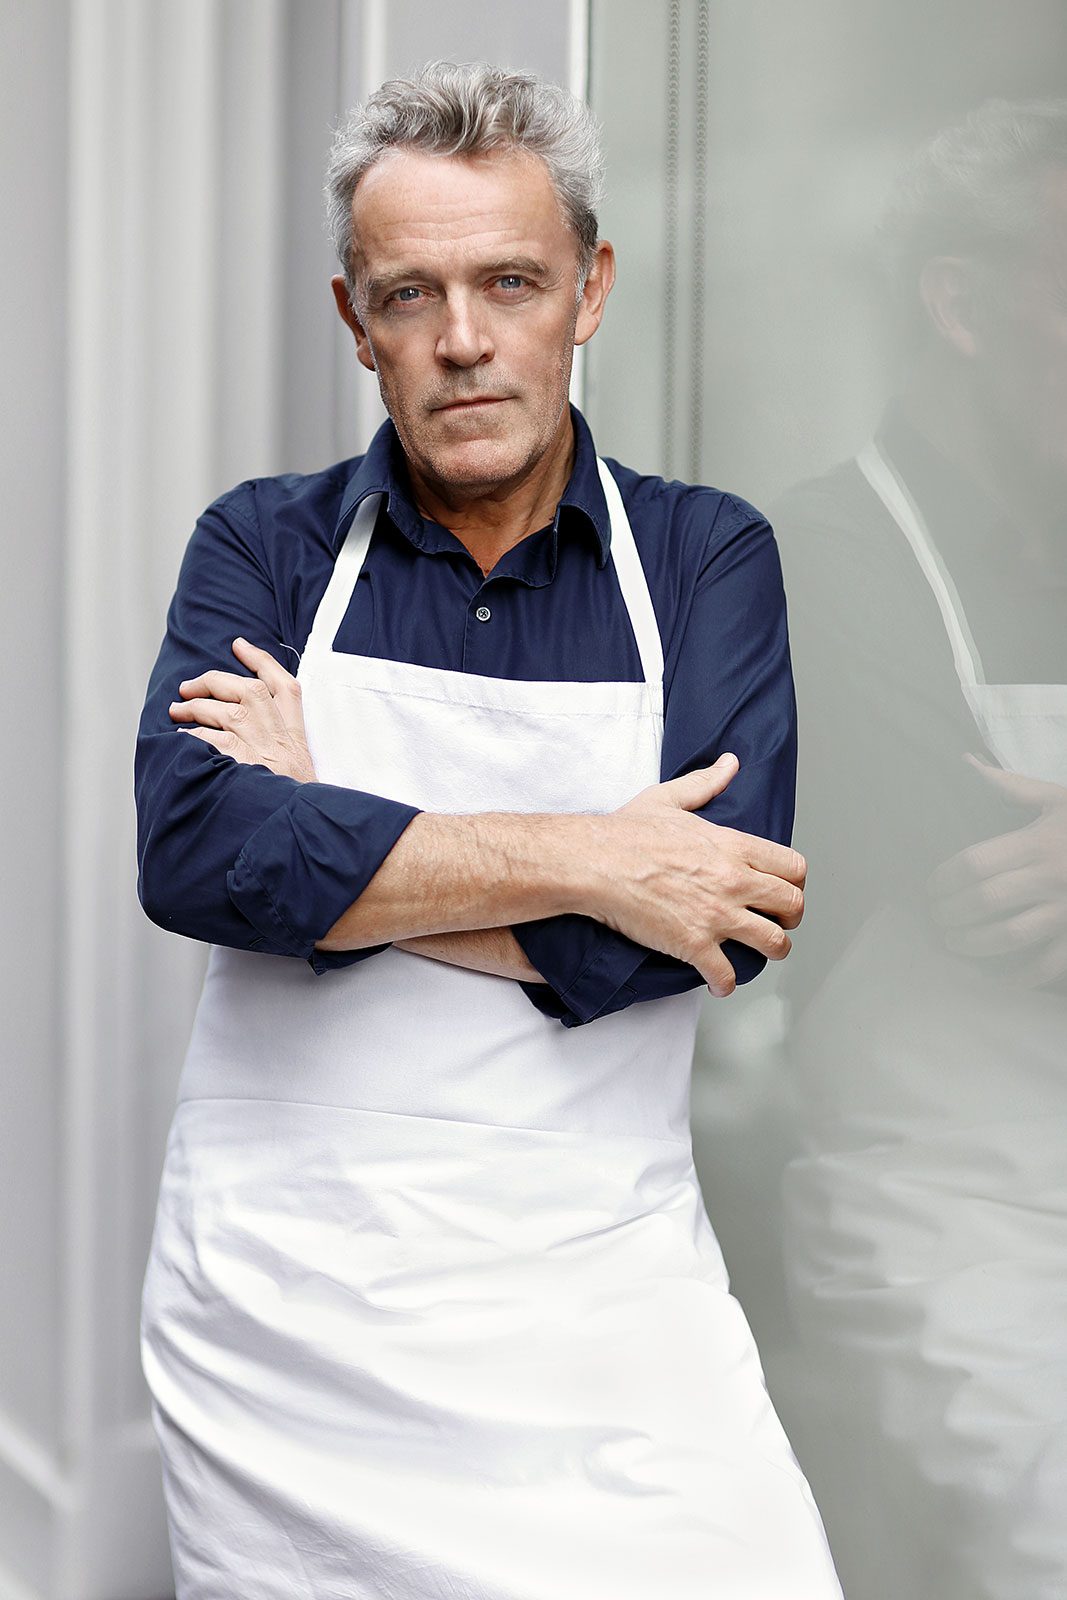 Chef Alain Passard of Arpège ©Douglas McWall